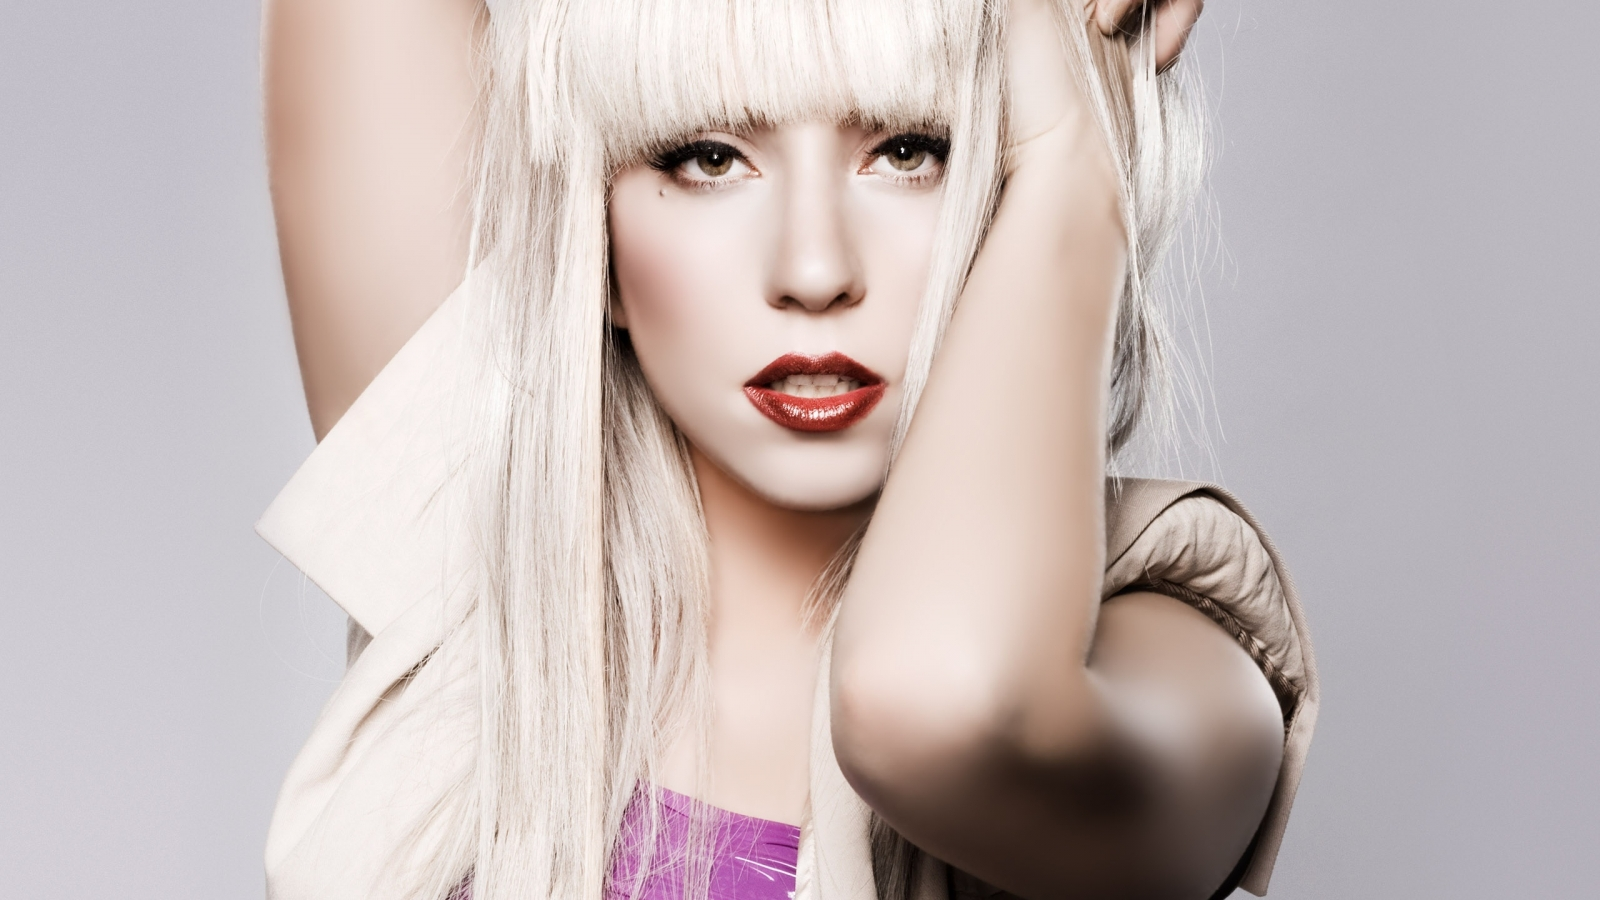 lady gaga - photo #31